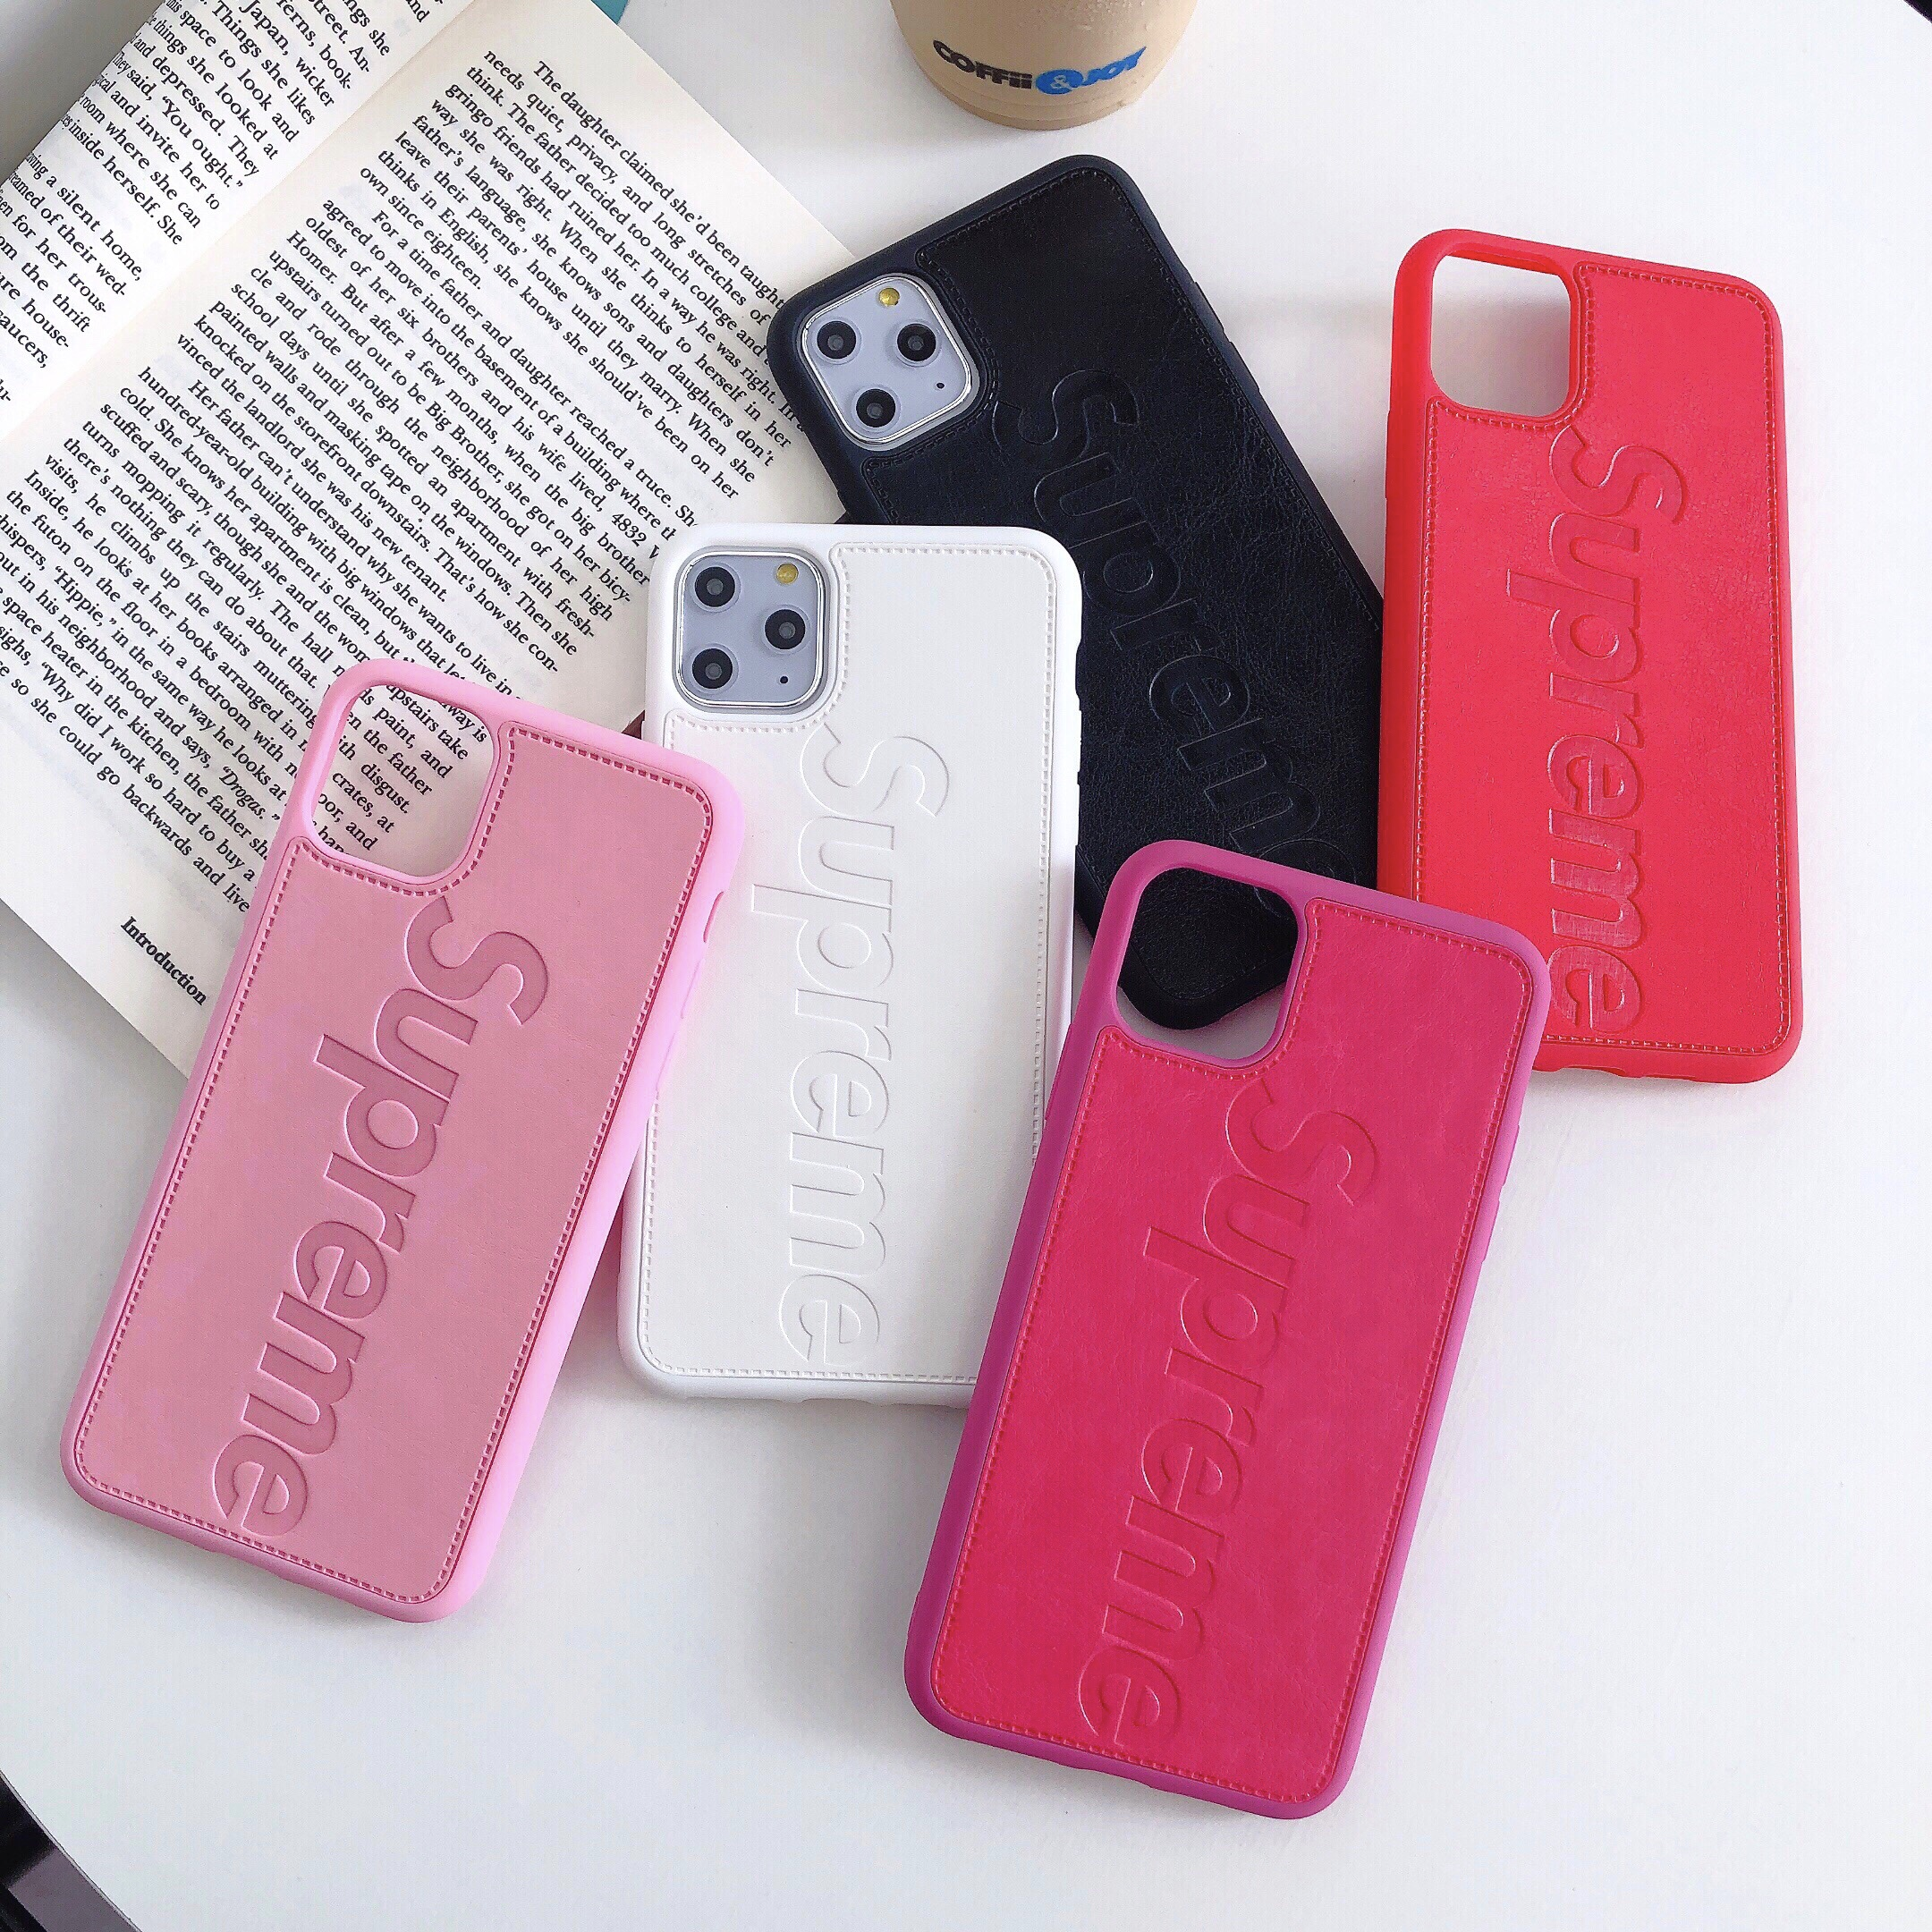 Supreme IPhone6/6s 6/6sPlus 7/8 7/8Plus Case 3 Color